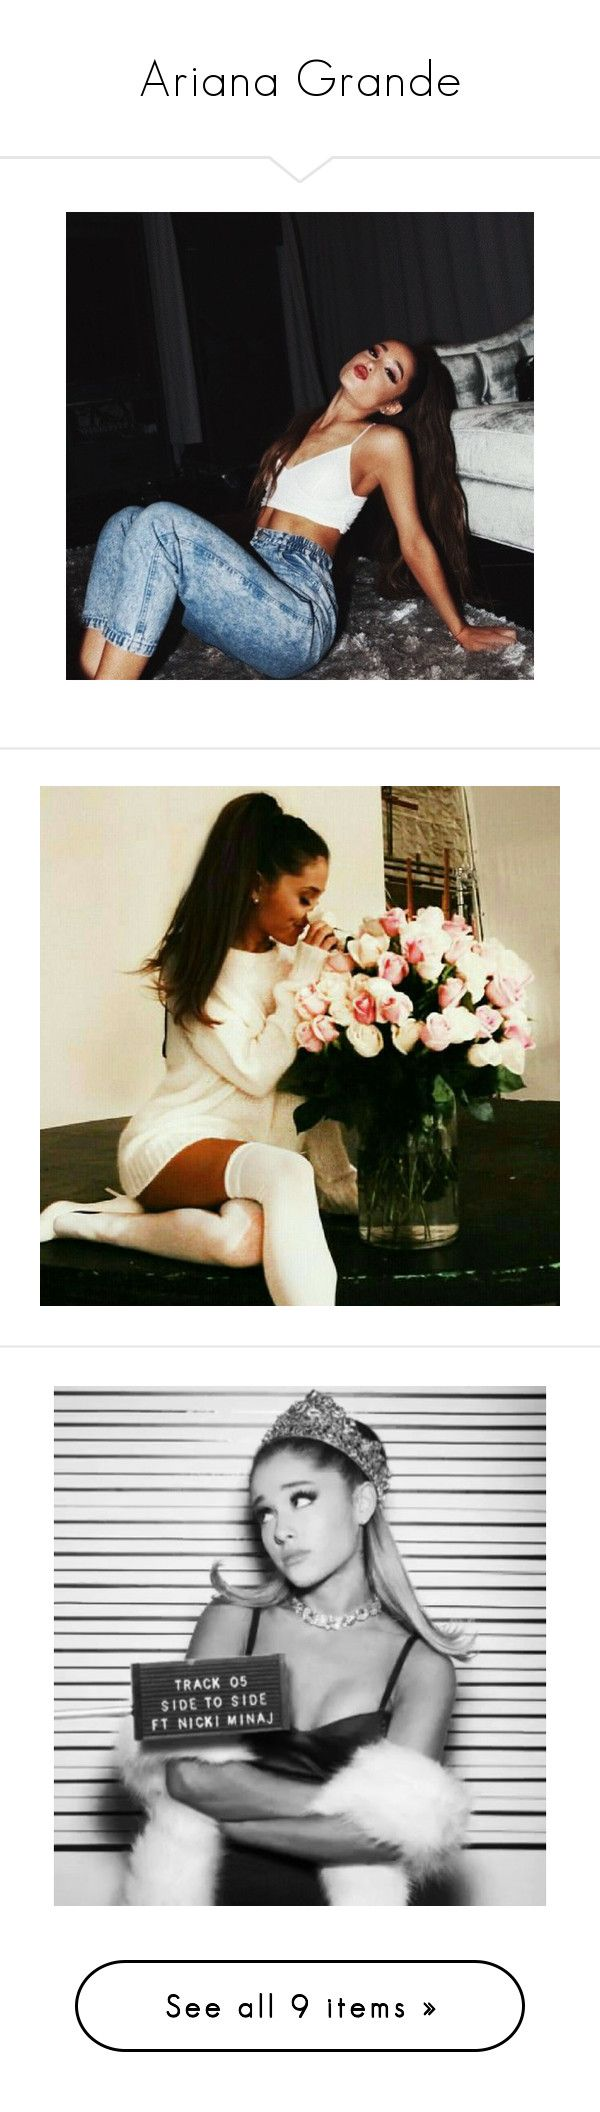 """""""Ariana Grande"""" by natalie-katycats ❤ liked on Polyvore featuring ariana grande, dangerous woman, people, pictures, pictures black and white, models, hair and backgrounds"""